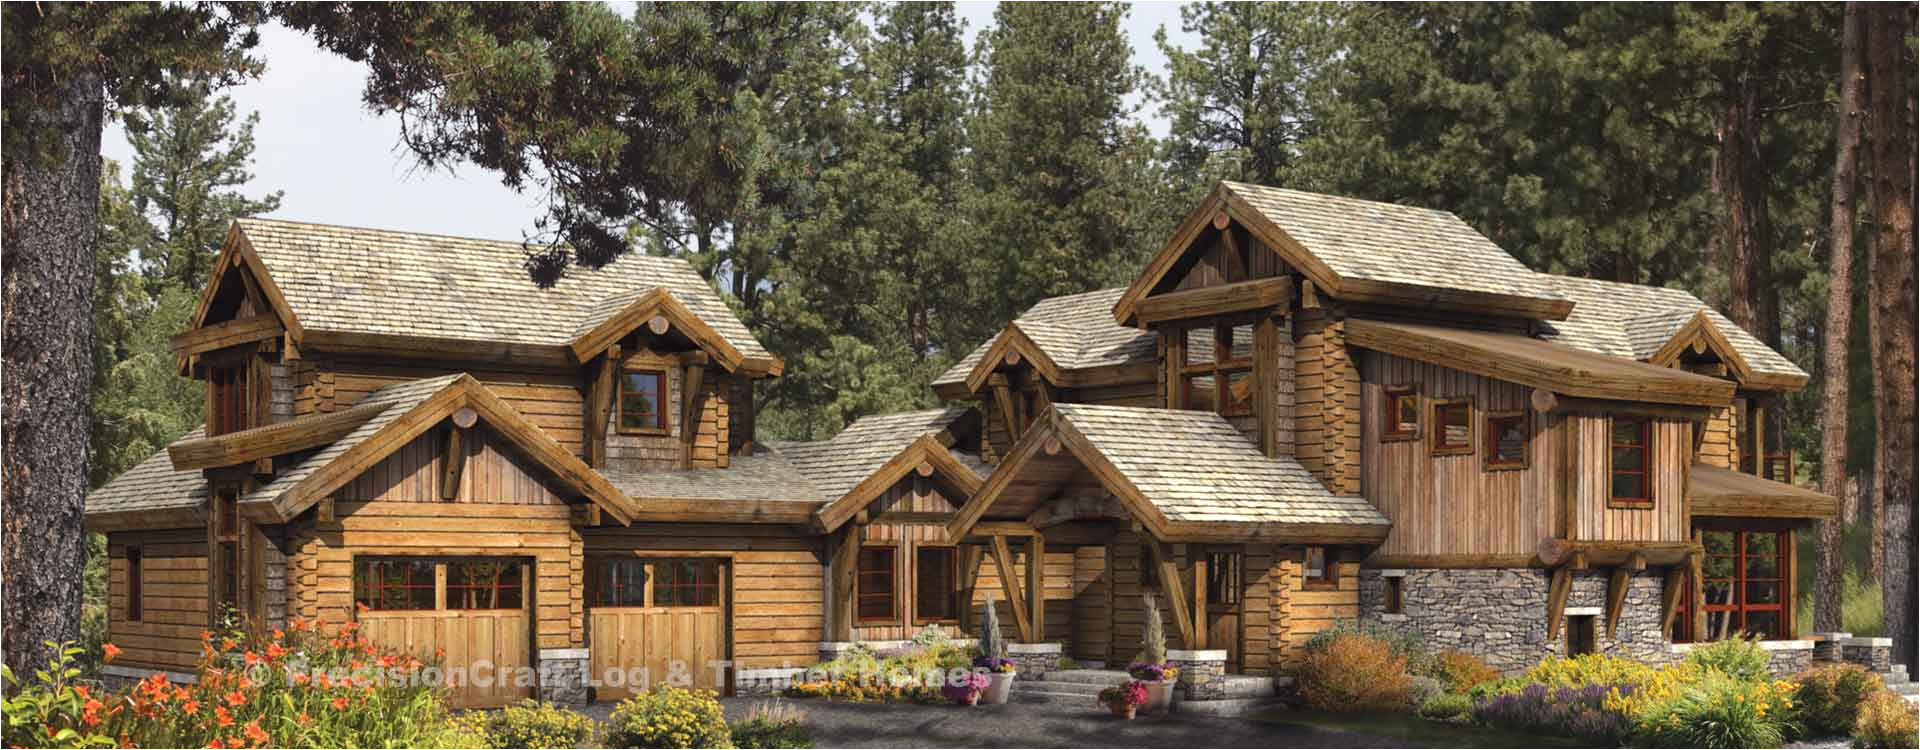 Precisioncraft Log Home Floor Plans Idlewild Log Home Design